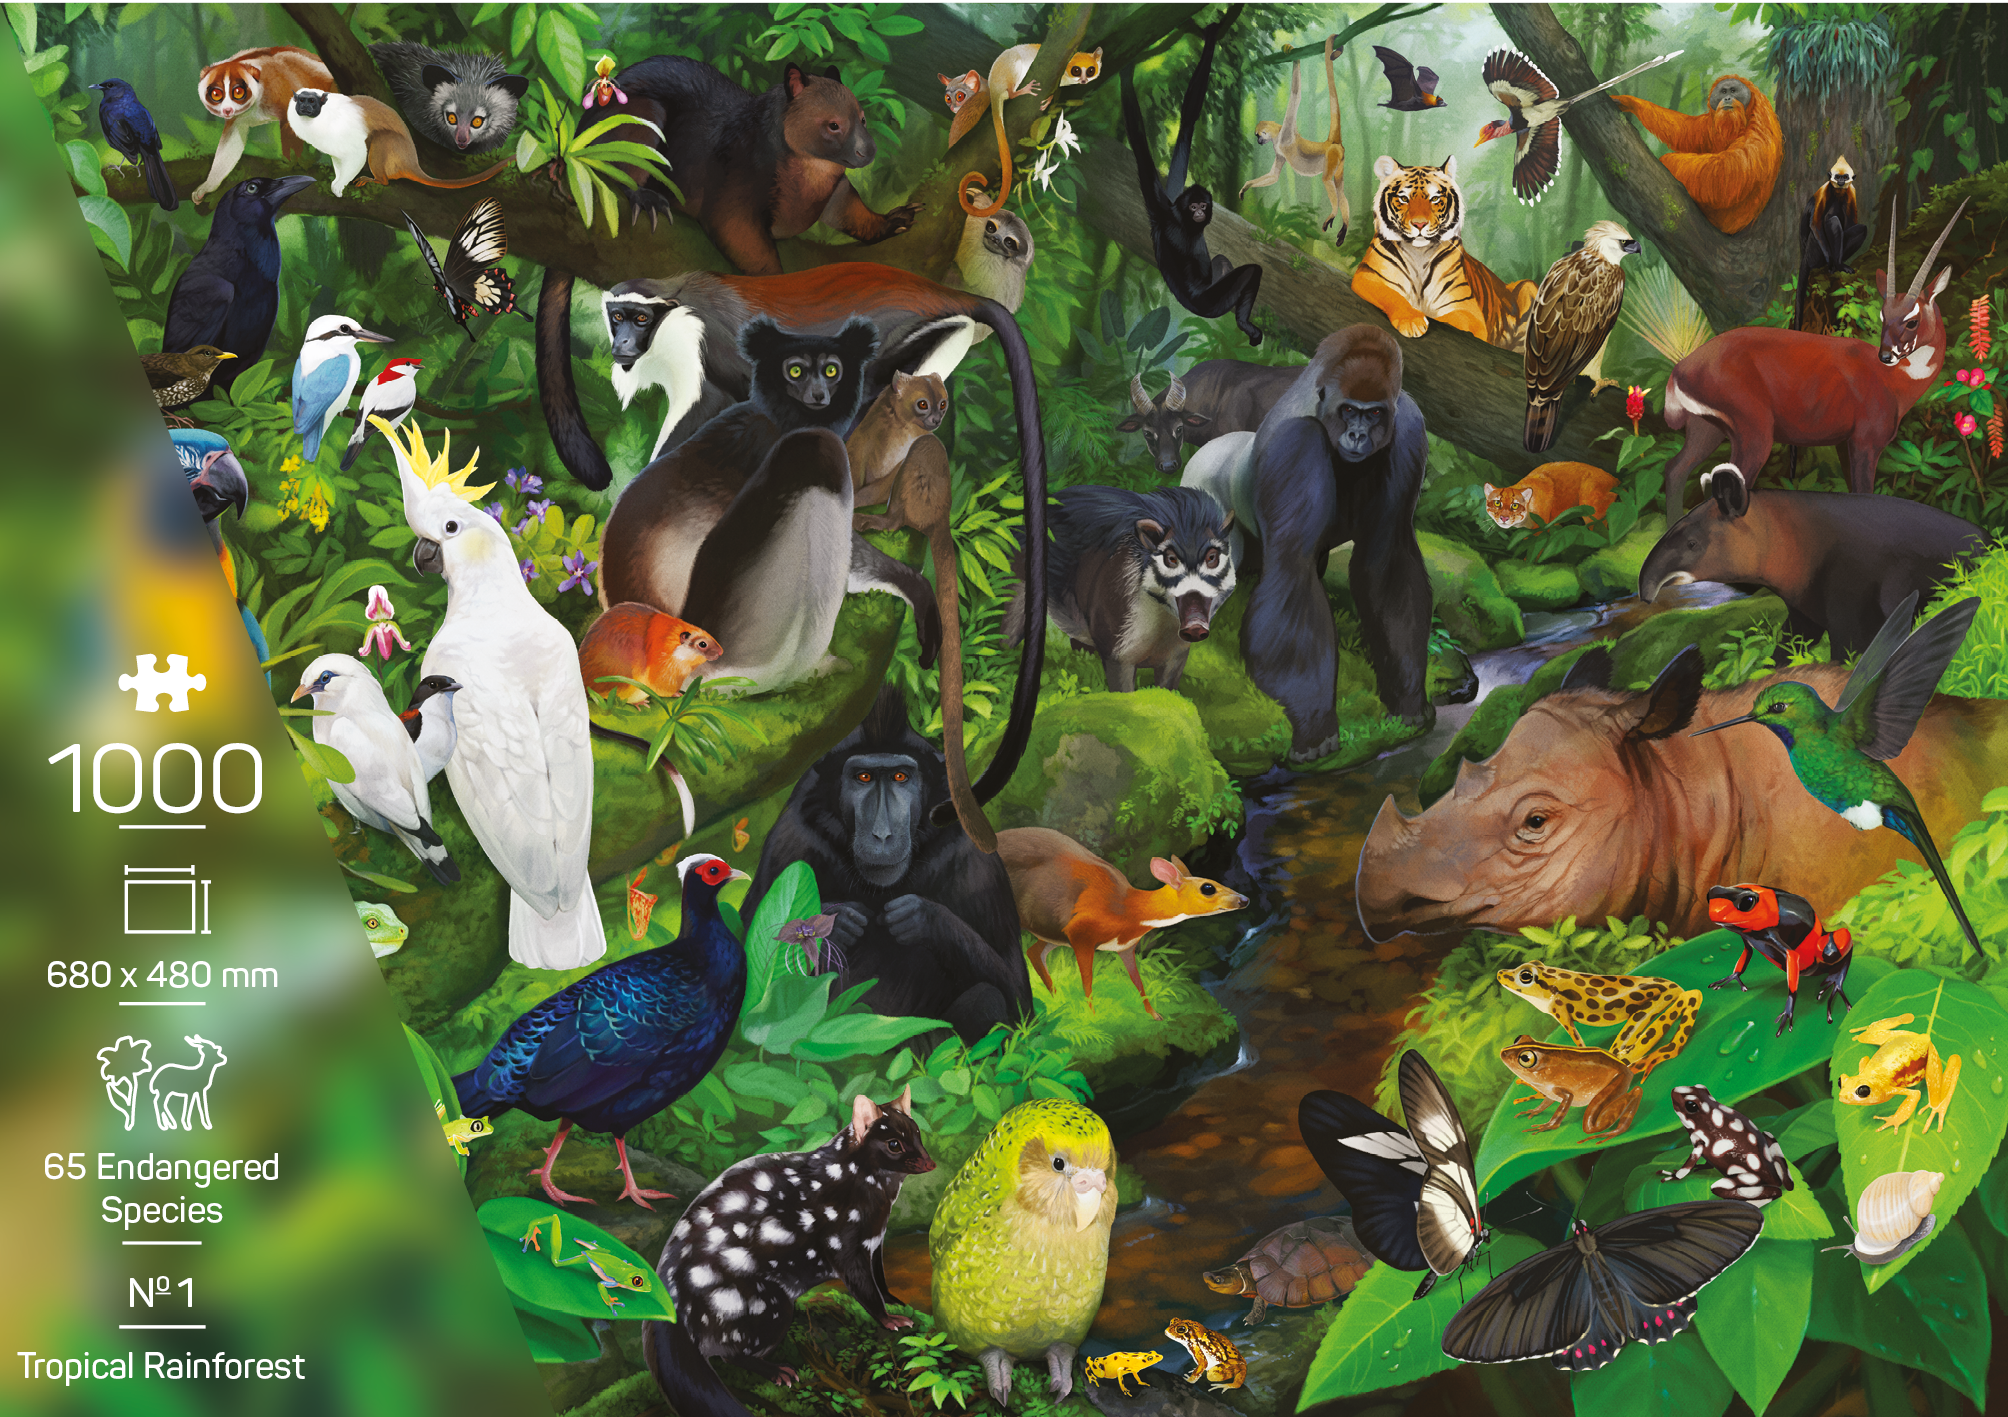 The Endangered Species Collection – Nr. 1 Tropical Rainforest